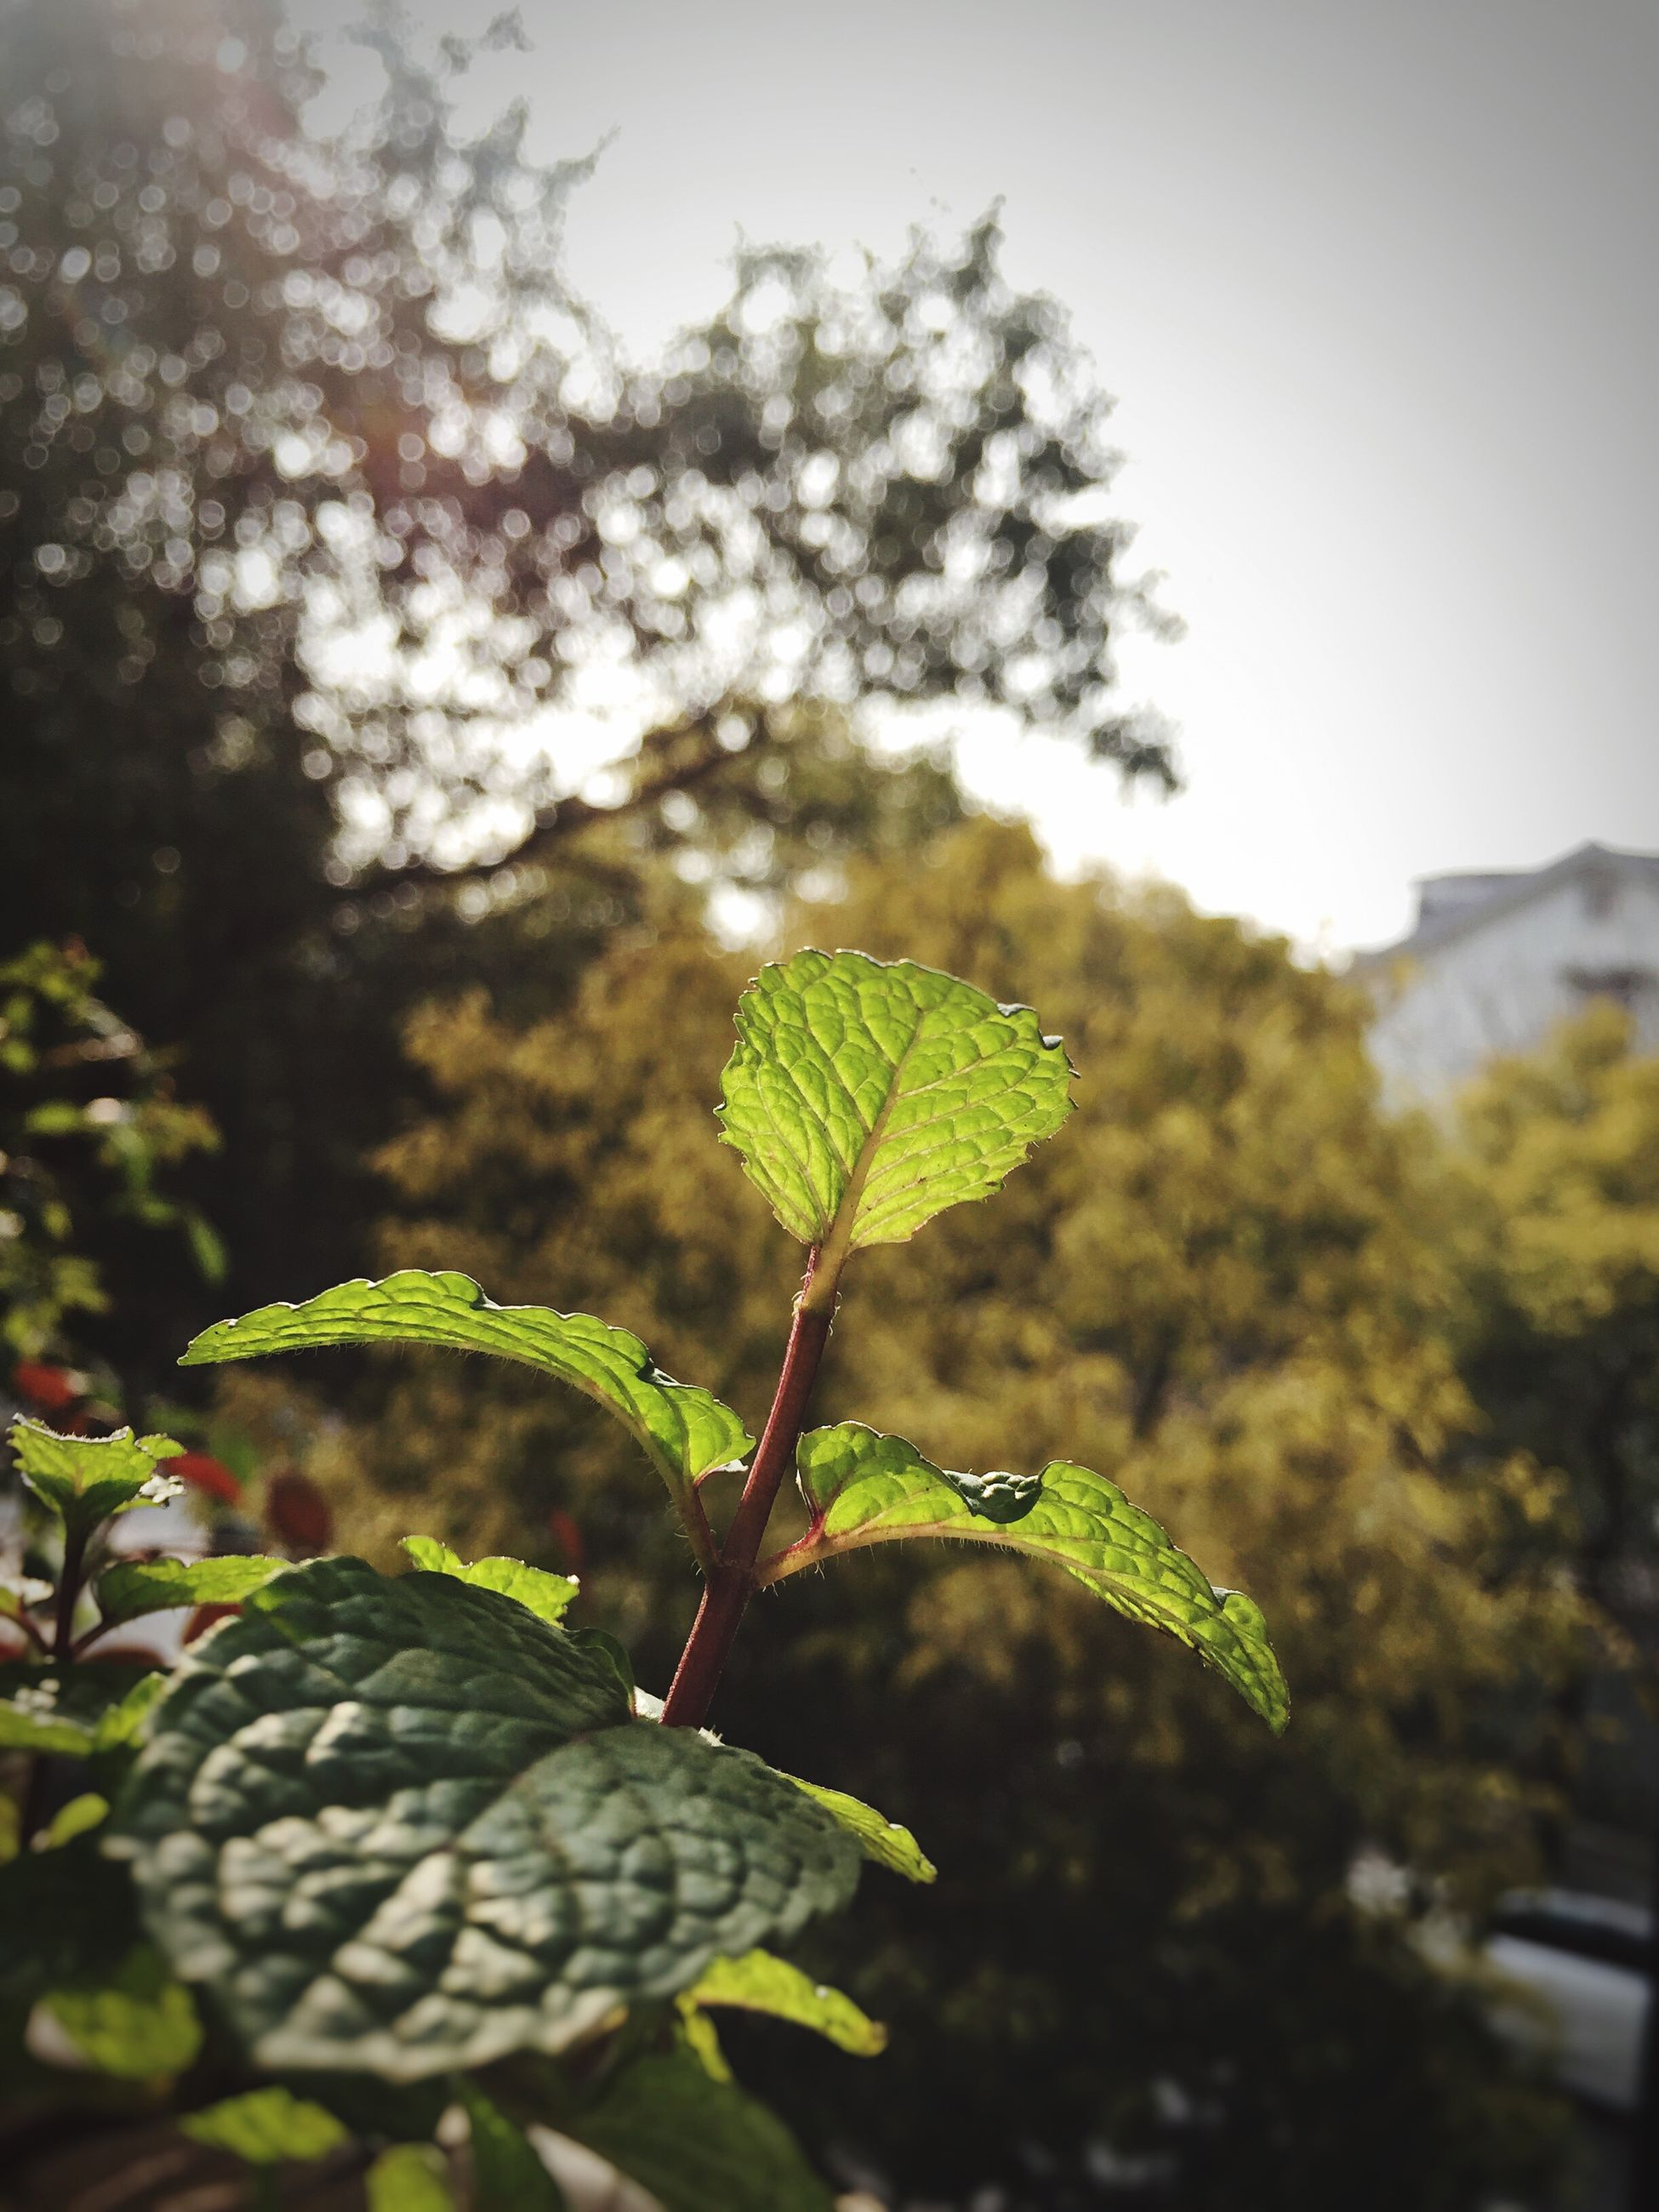 leaf, focus on foreground, green color, animals in the wild, animal themes, close-up, one animal, plant, wildlife, growth, nature, selective focus, insect, beauty in nature, day, outdoors, no people, sunlight, tree, green